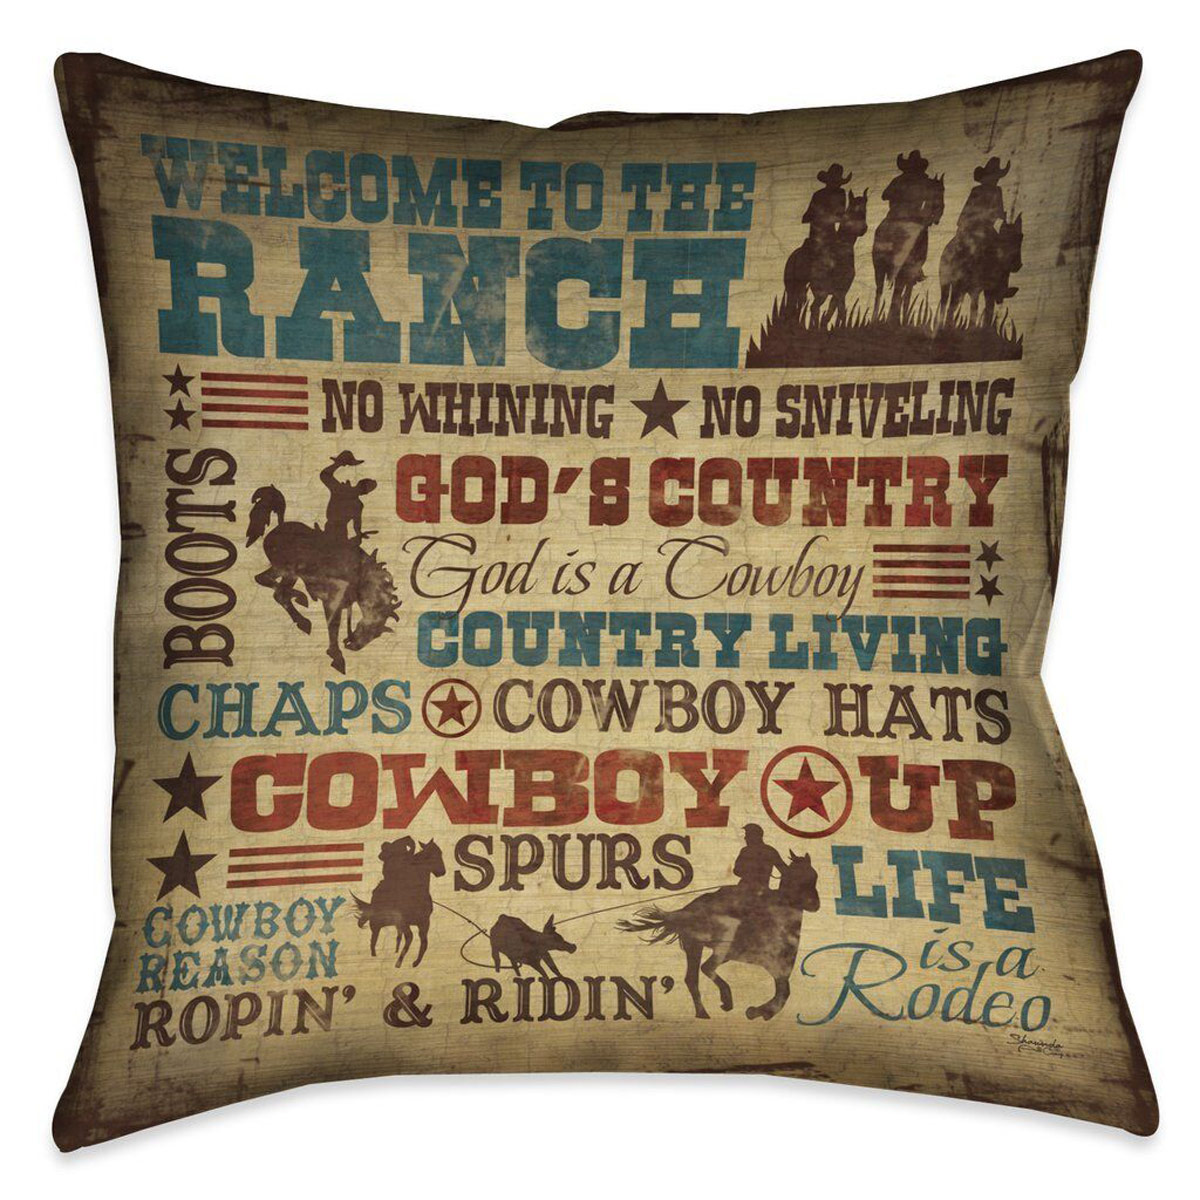 Cowboy Lifestyle 18 x 18 Outdoor Pillow